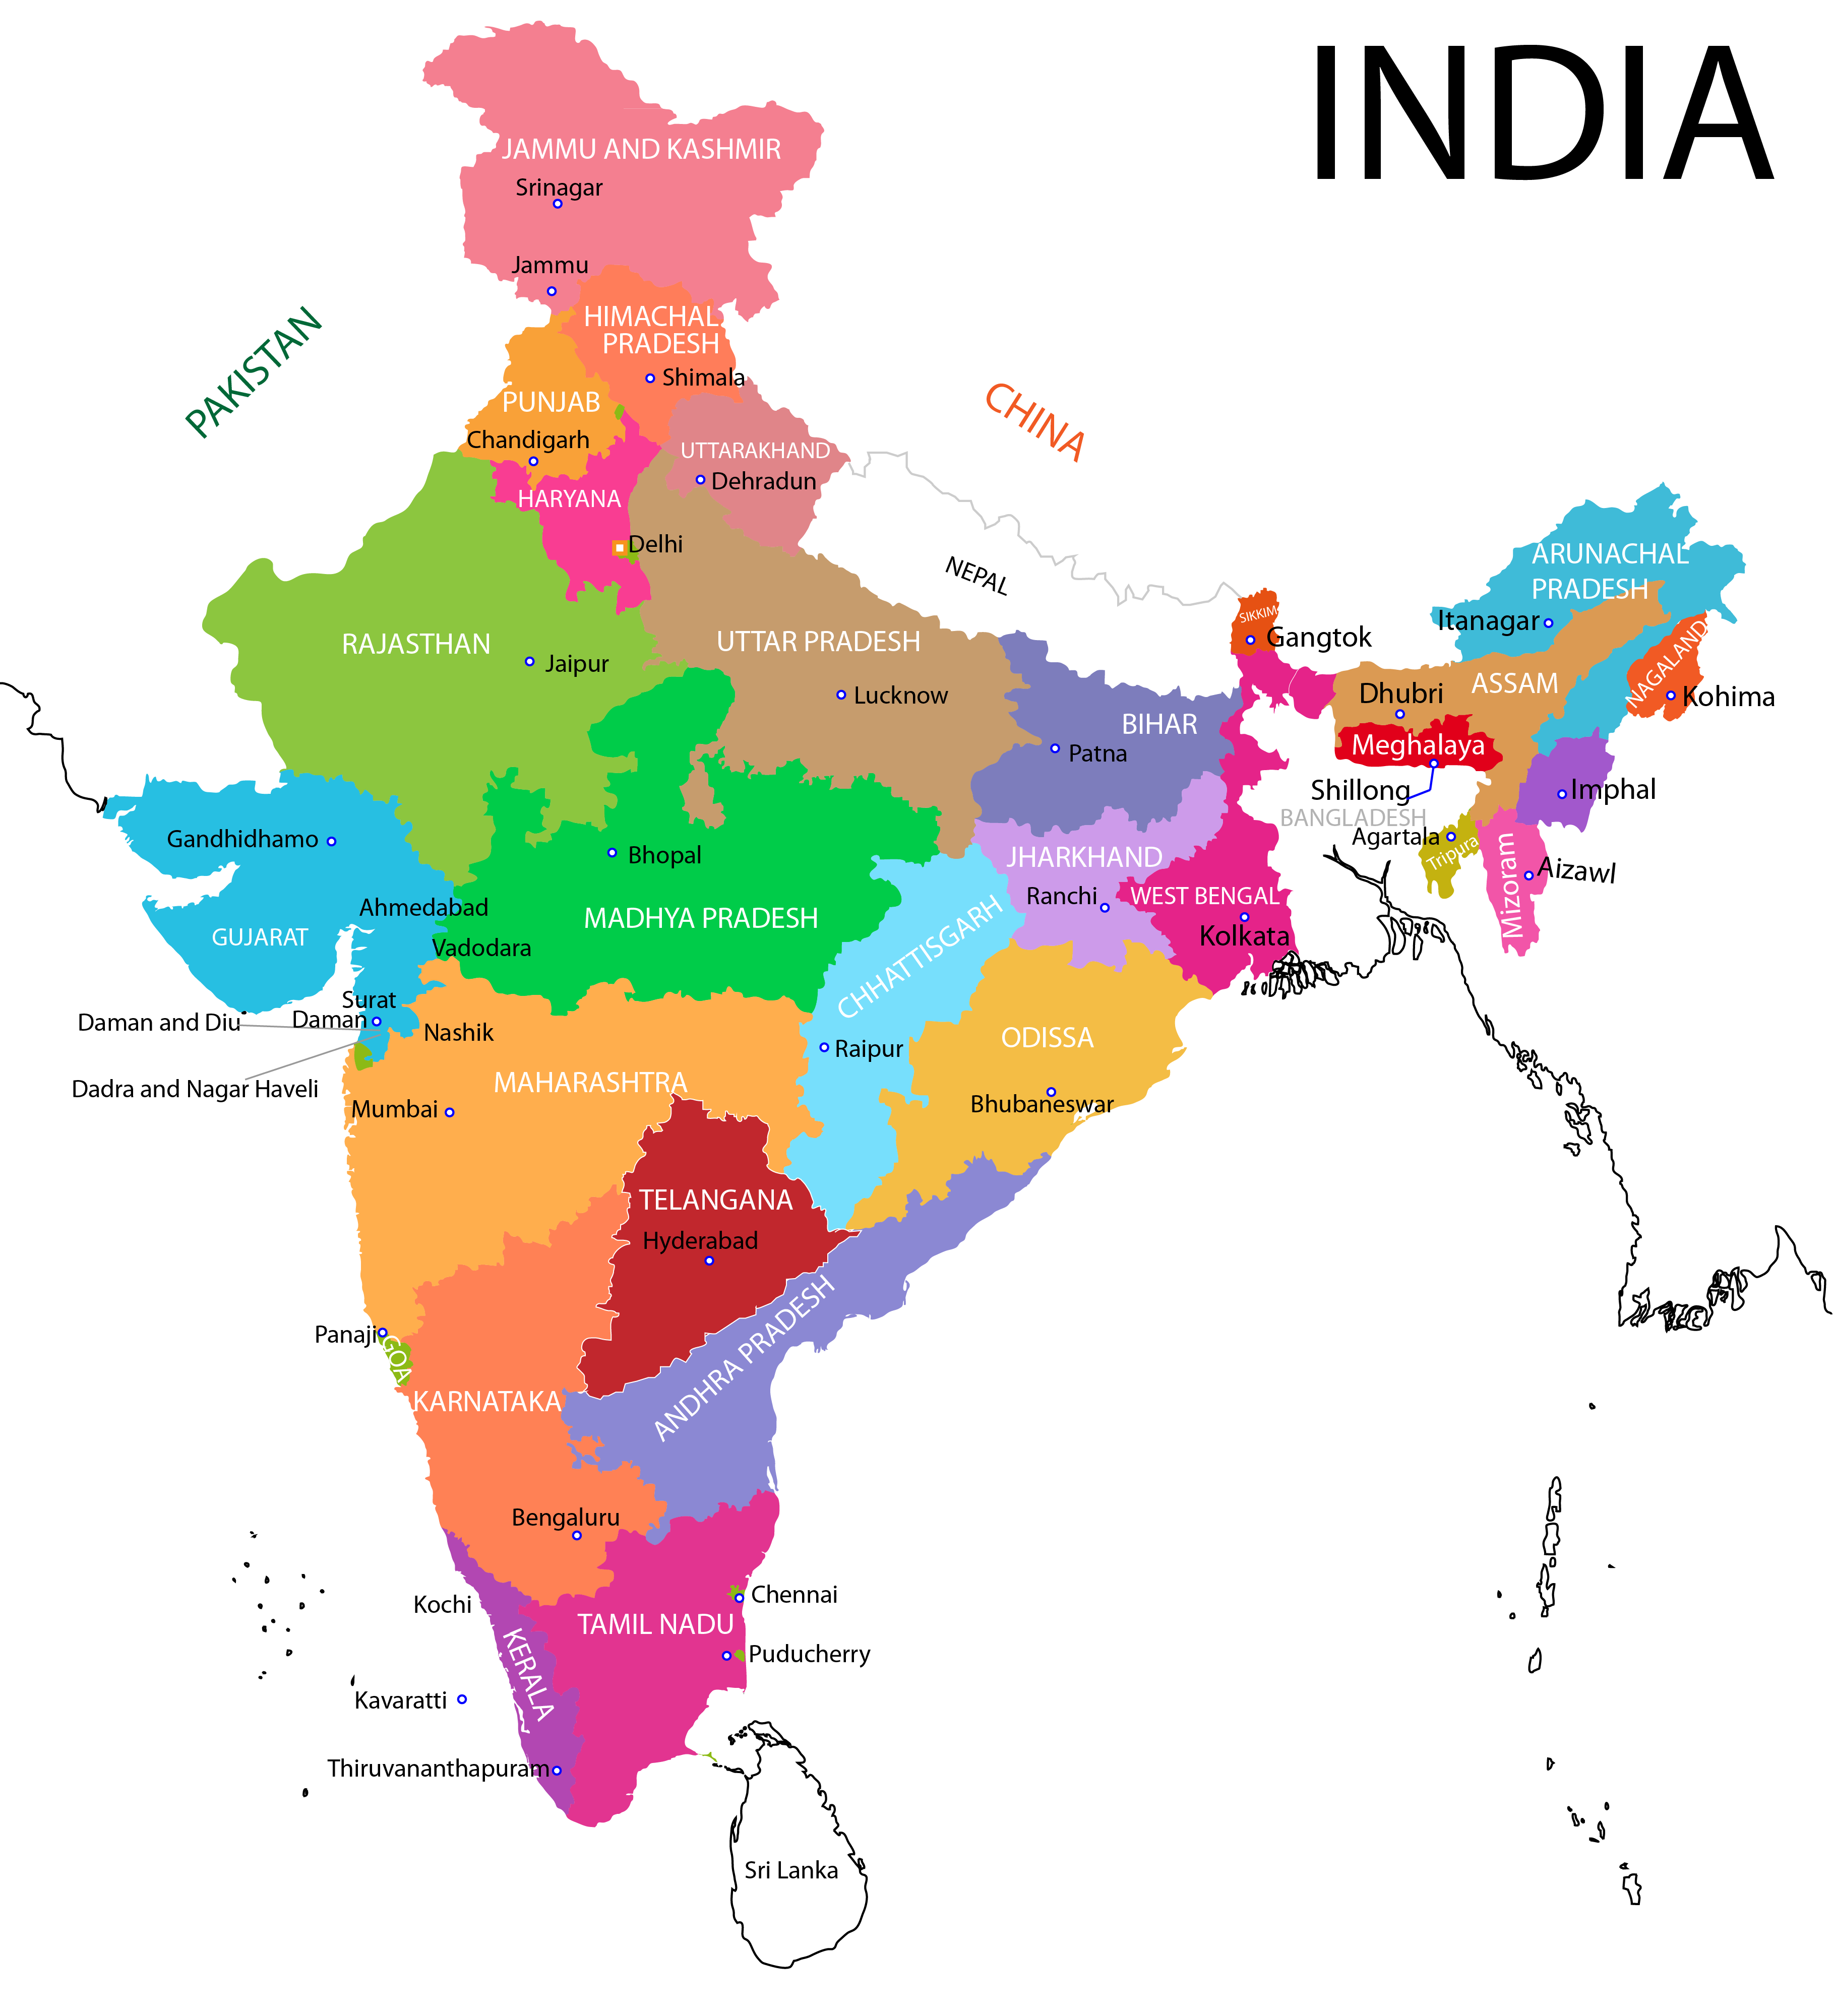 India transparent map. Png images free download